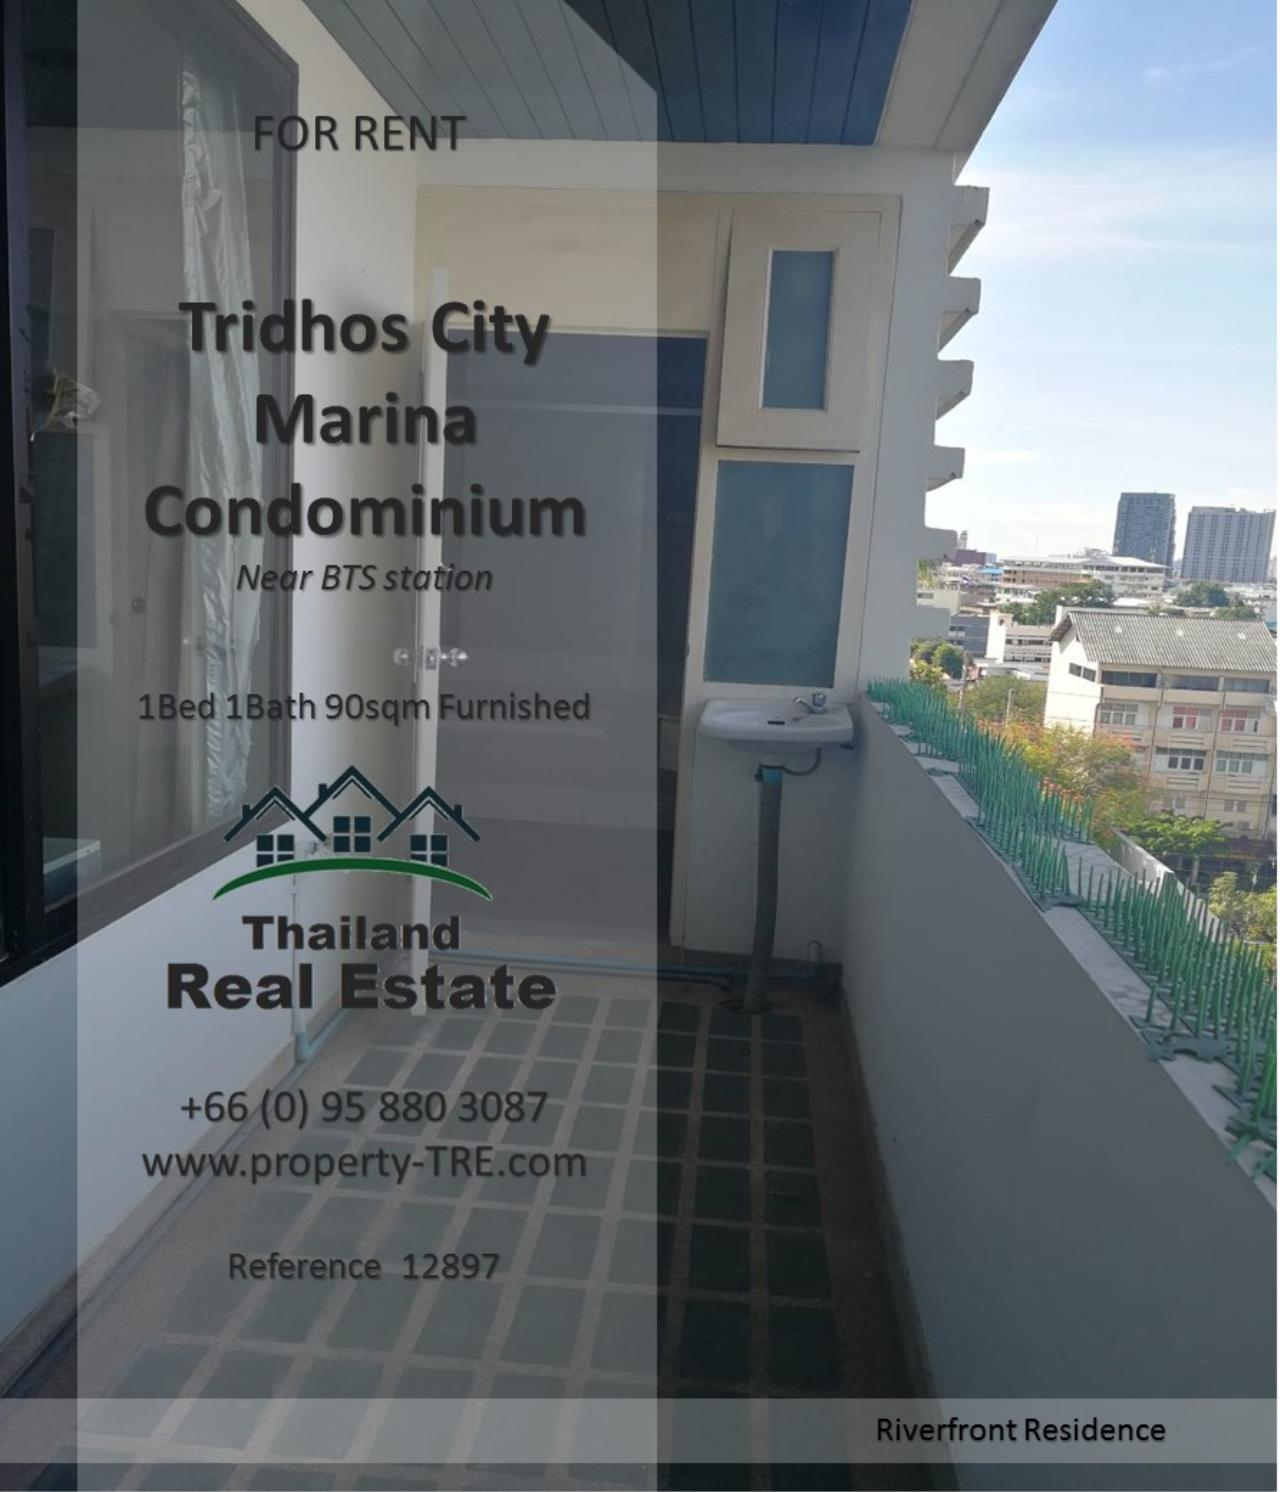 Thailand Real Estate Agency's 1 Bedroom Condo at Tridhos City Marina near 2 BTS Stations(12897) 6